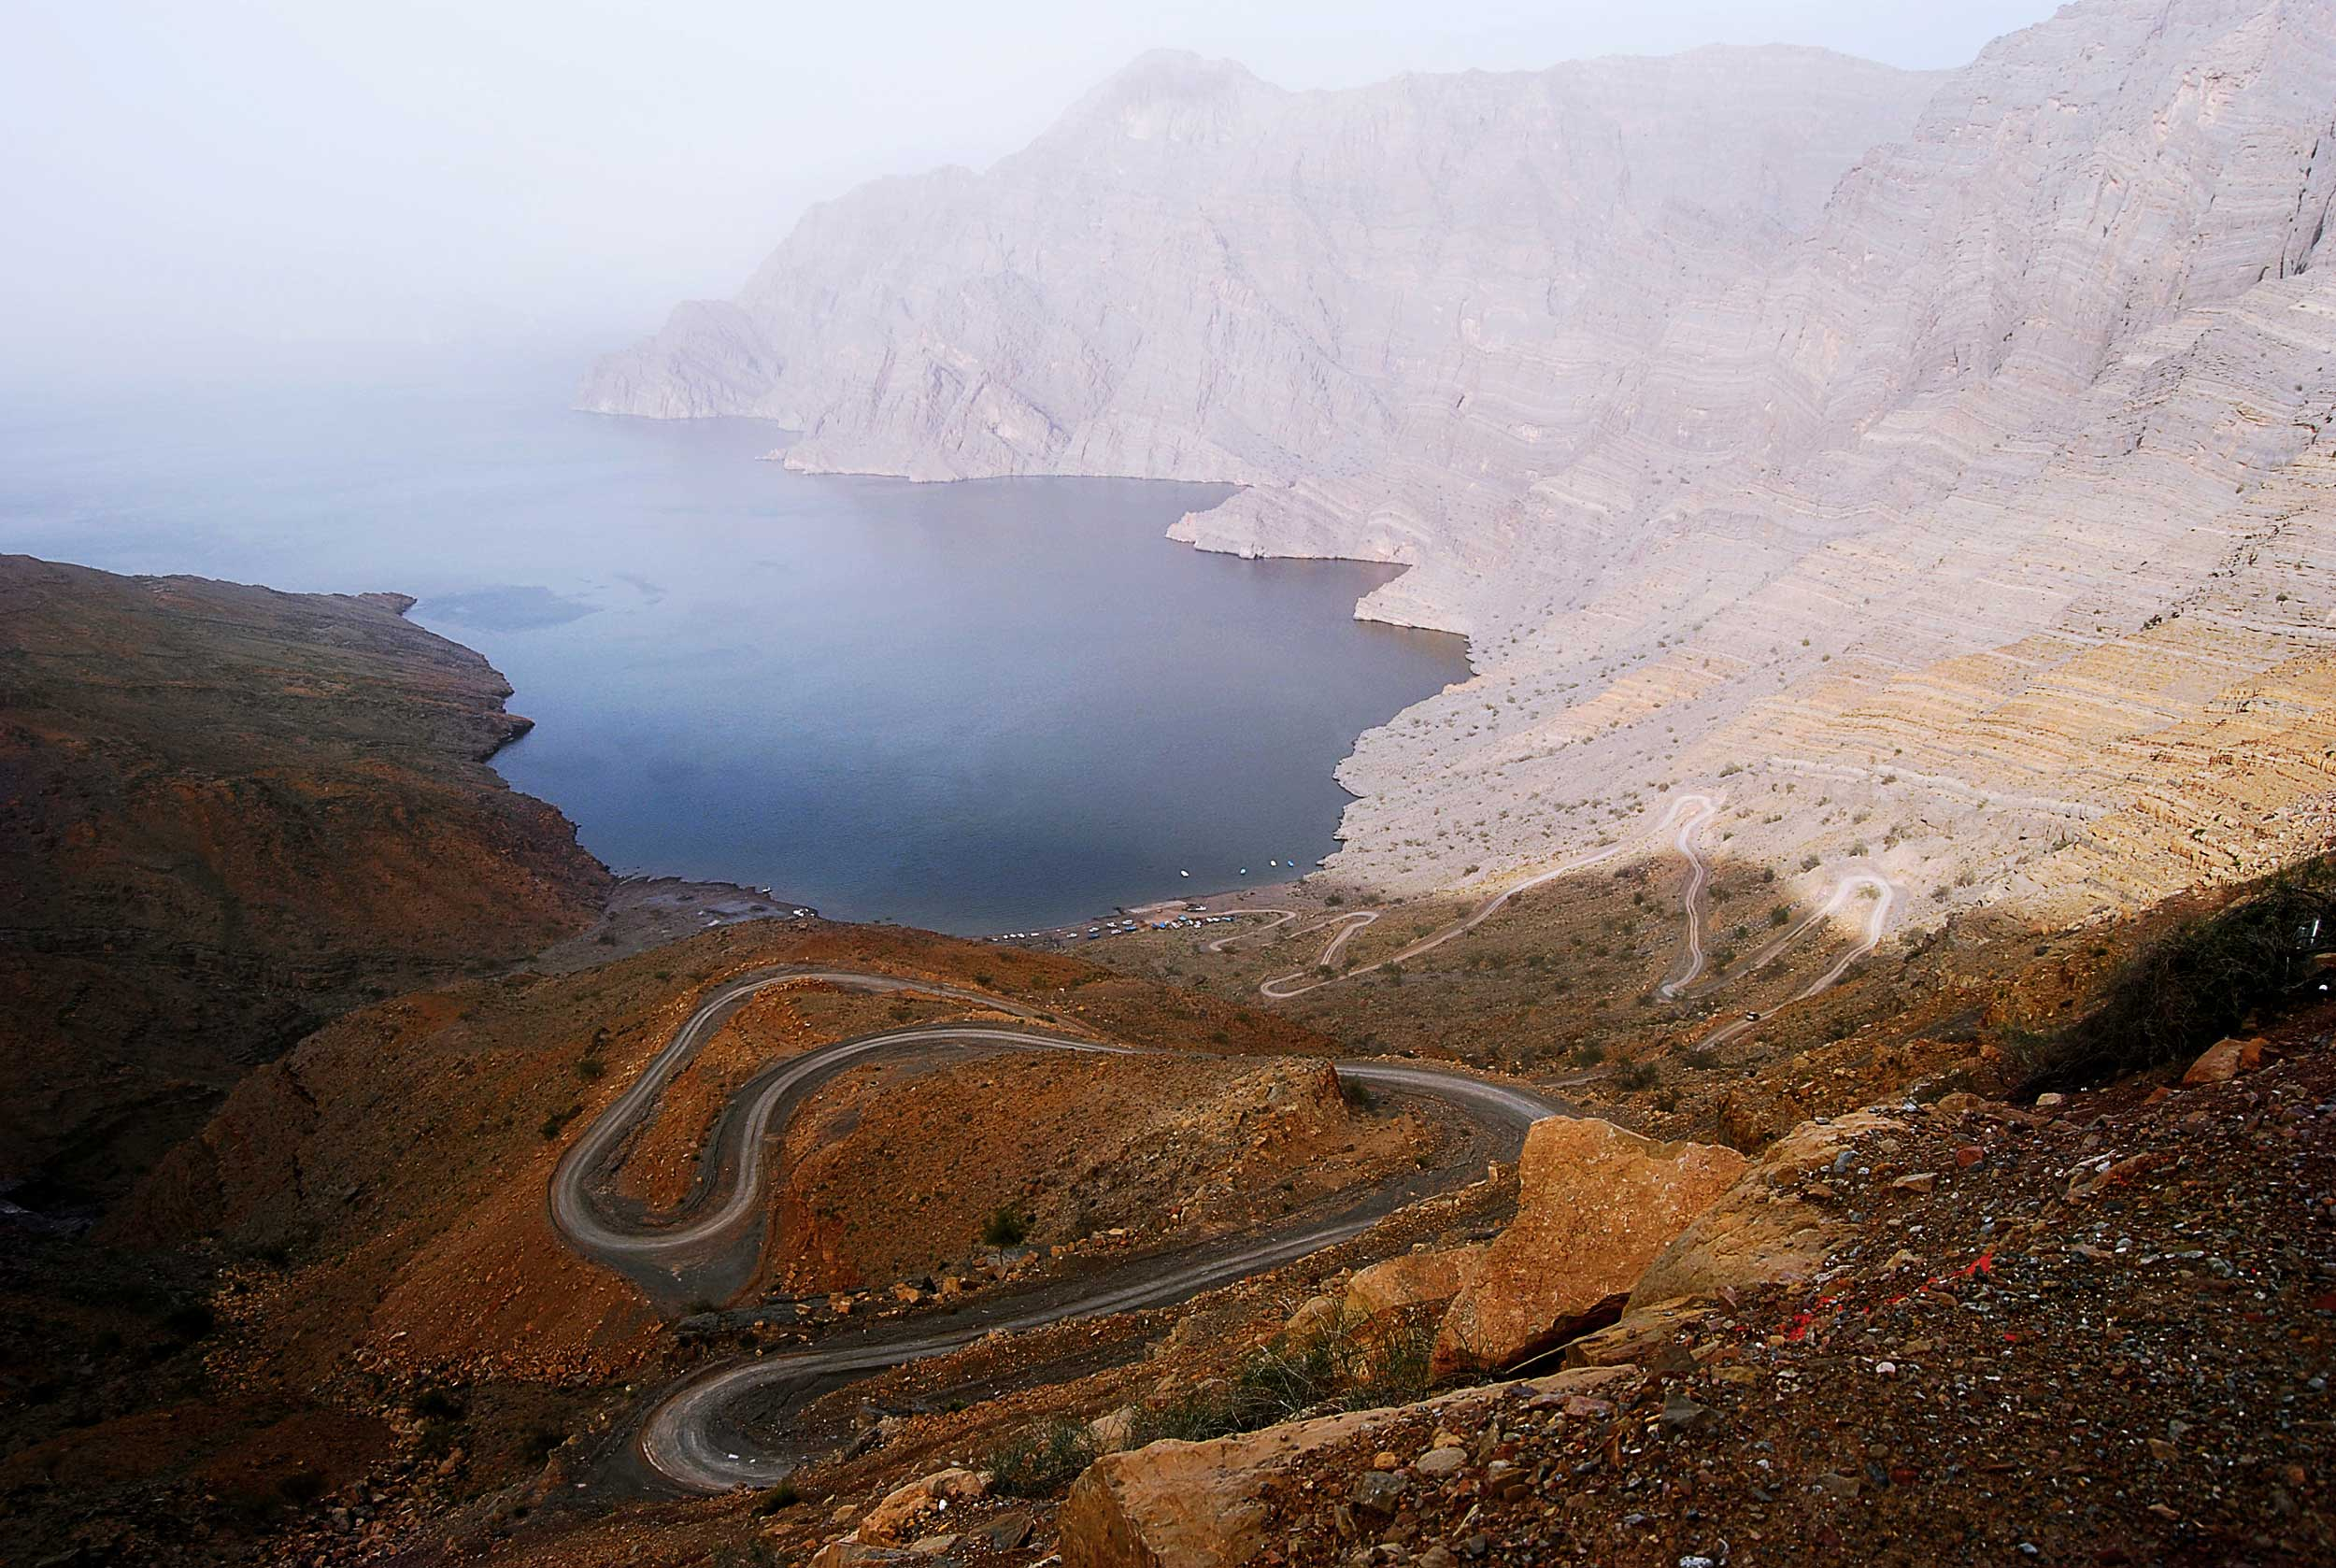 An extremely long and winding road going down a brown mountainside to the sea with white cliffs and hills in the distance, Musandam Peninsula, Oman